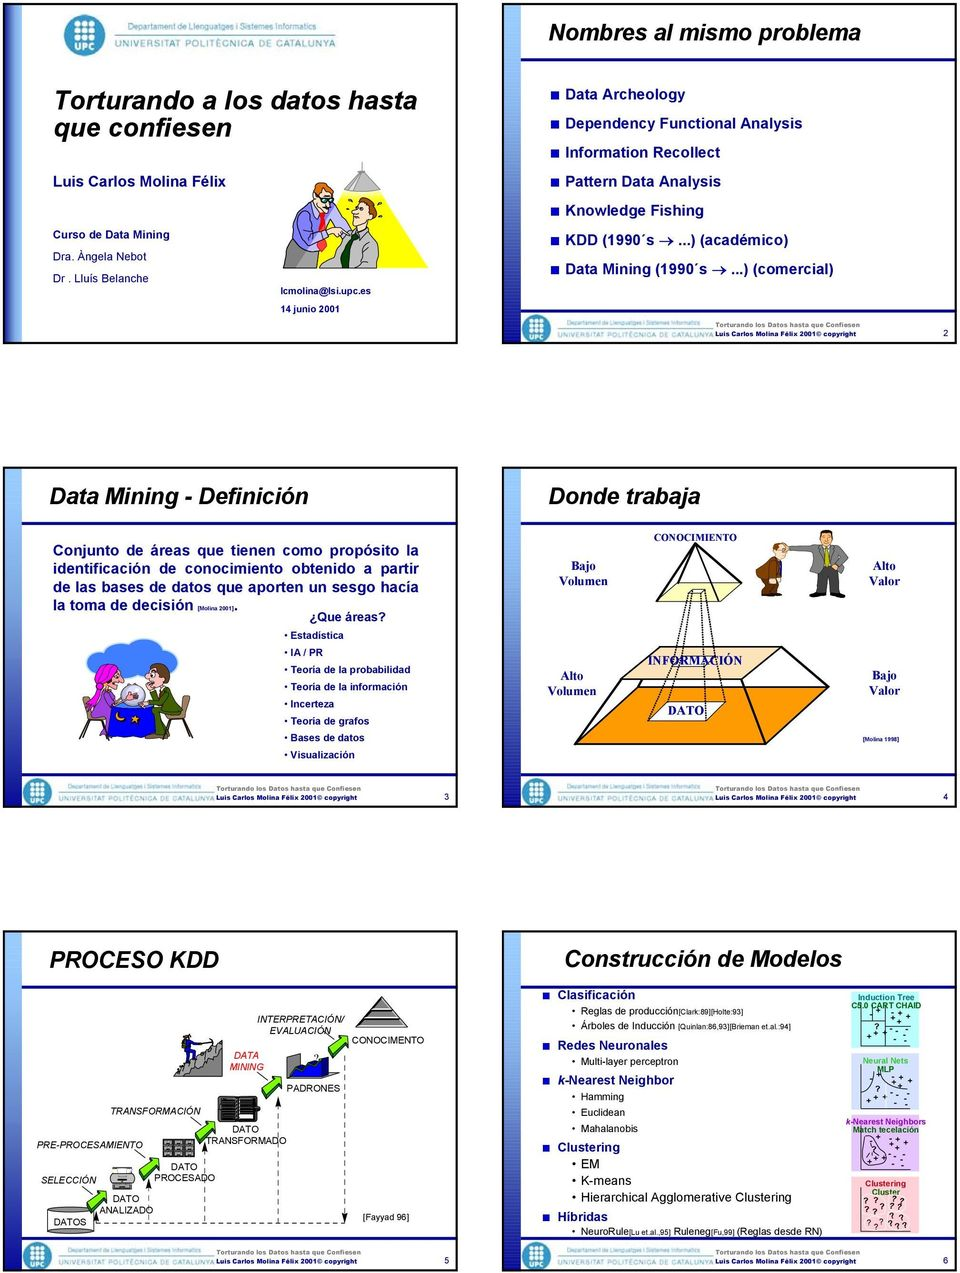 Knowledge Fishing KDD (1990 s...) (académico) Data Mining (1990 s.